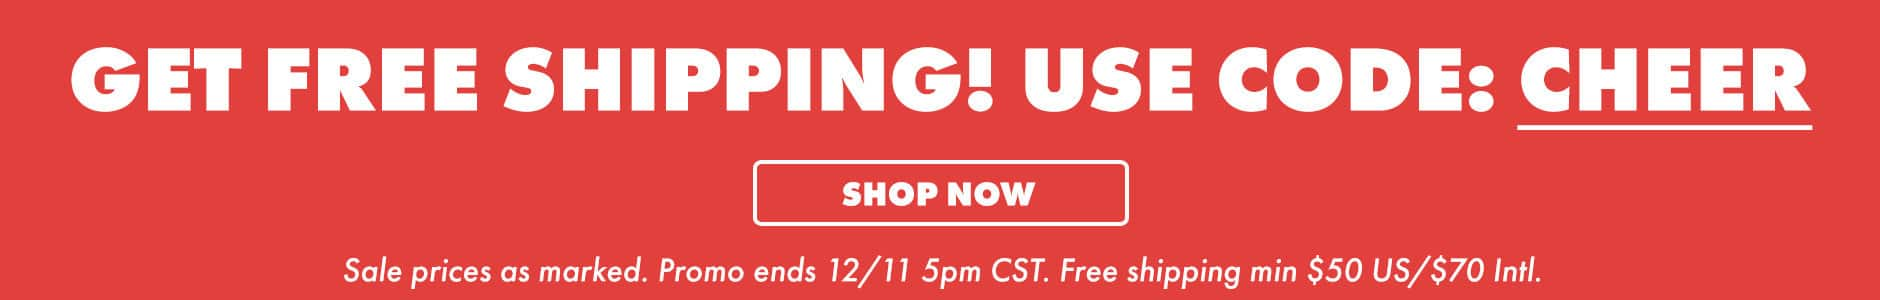 Get free shipping! Use code: CHEER. Shop now. Sale prices as marked. Promo ends 12/11 5PM CST. Free shipping min $50 US/$70 Intl.